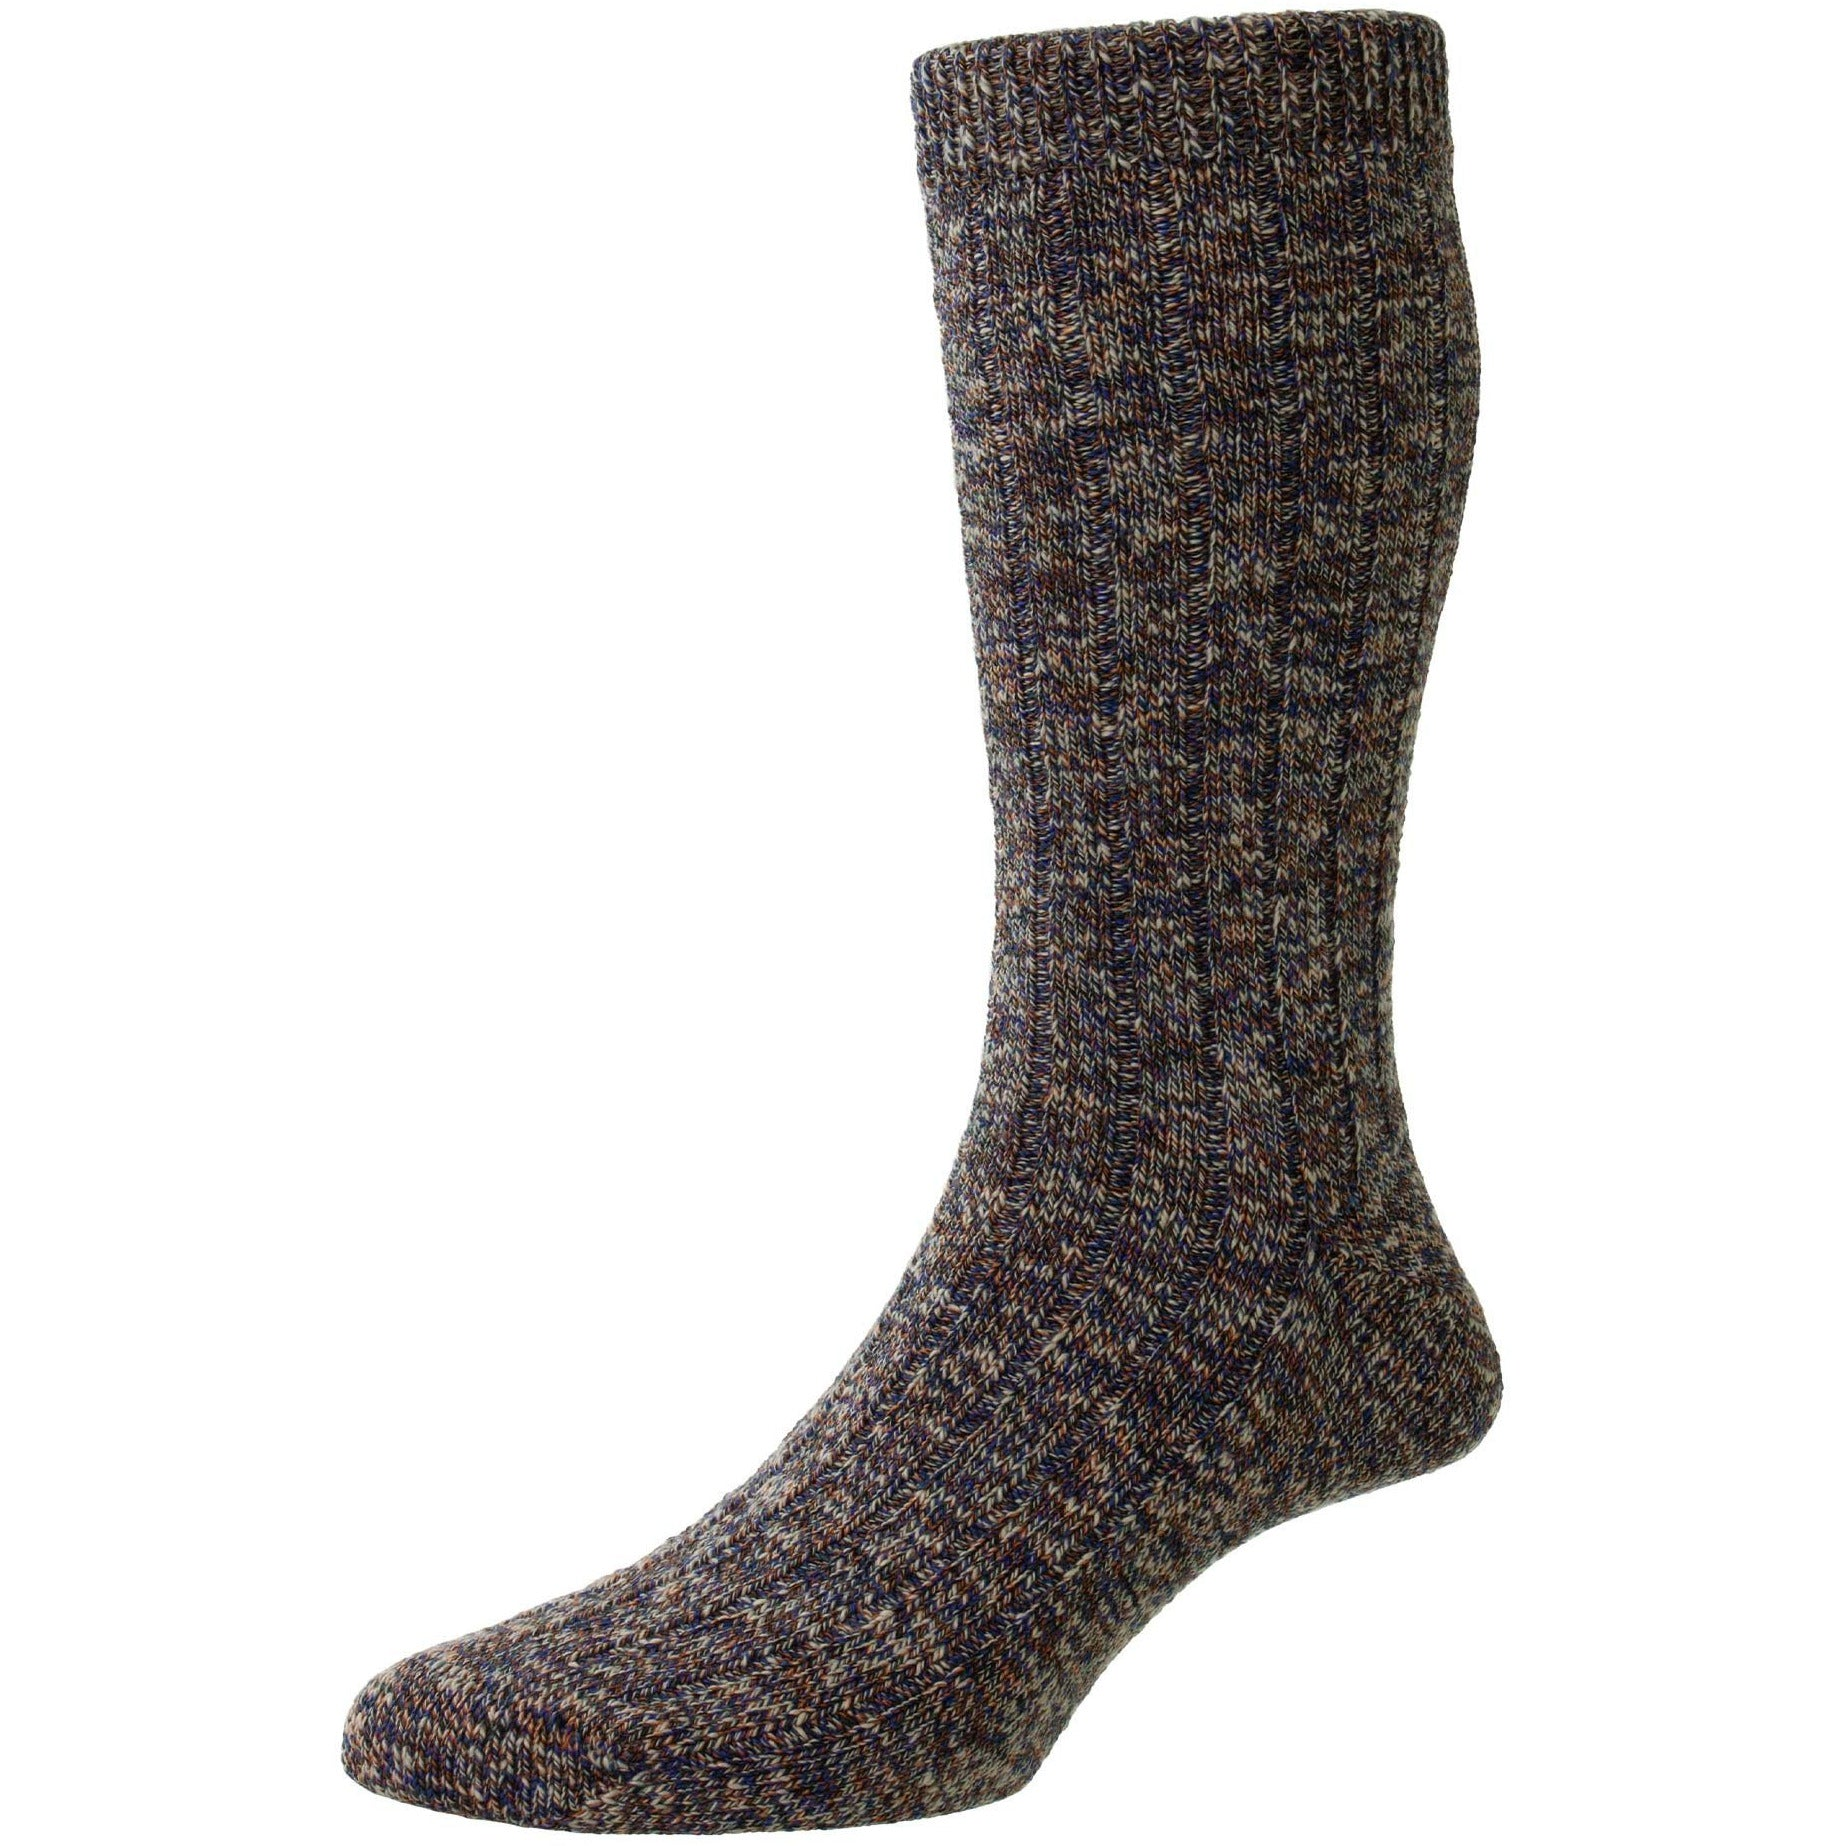 Rye recycled cotton 5x1 Ribbed Mid-Calf Dress Socks